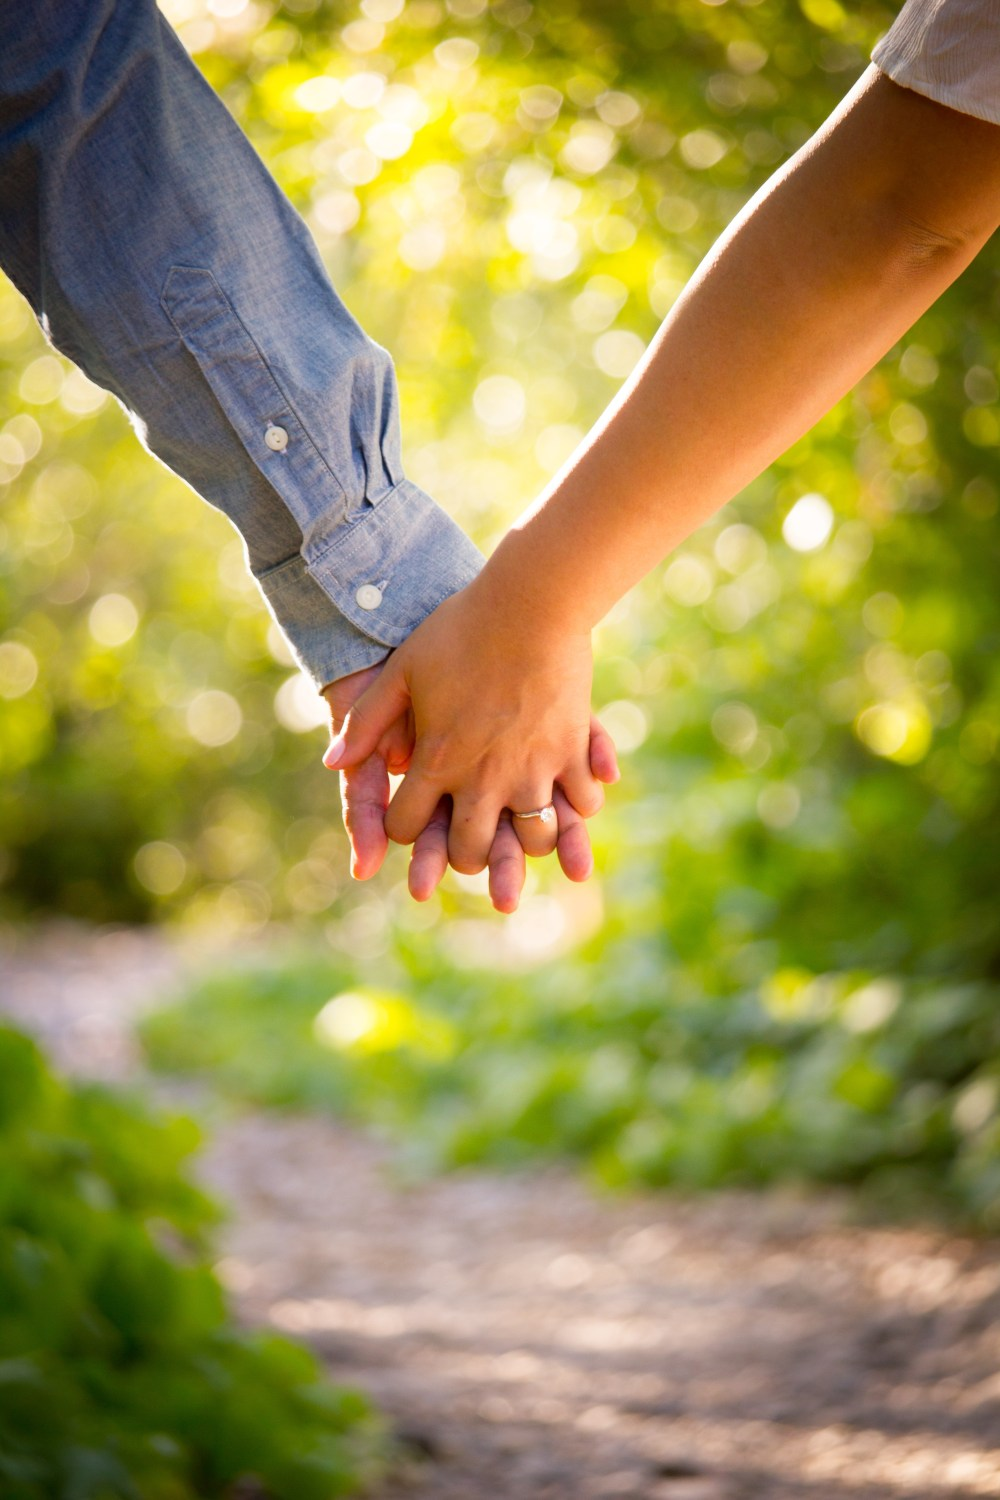 Wallpaper Cute Cartoon Muslimah 500 Holding Hands Pictures Amp Images Hd Download Free